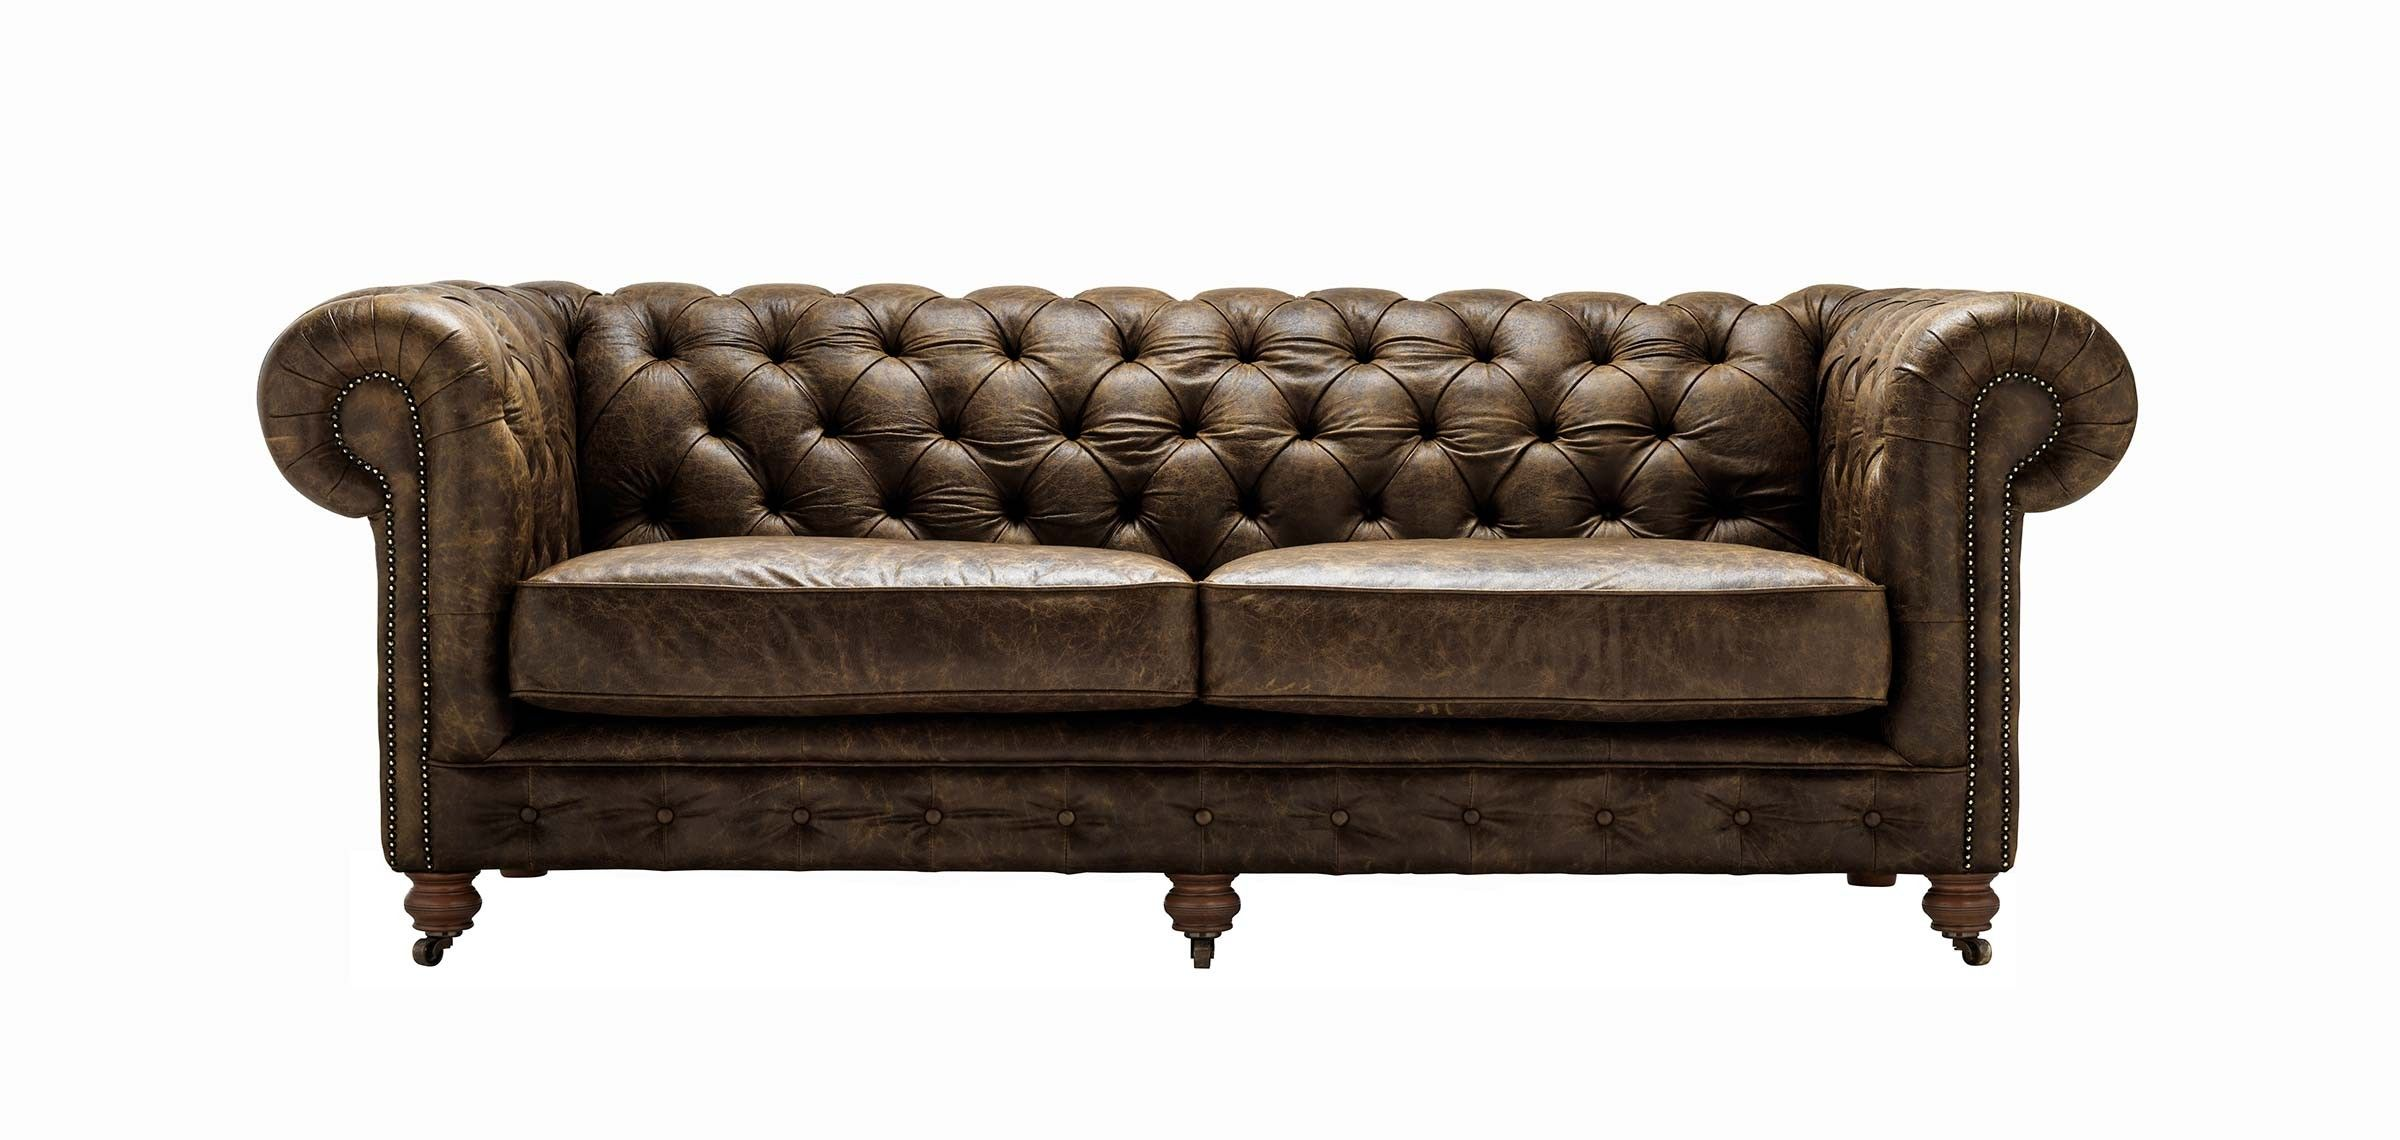 A pair of Victorian mahogany Chesterfield sofas br late 19th